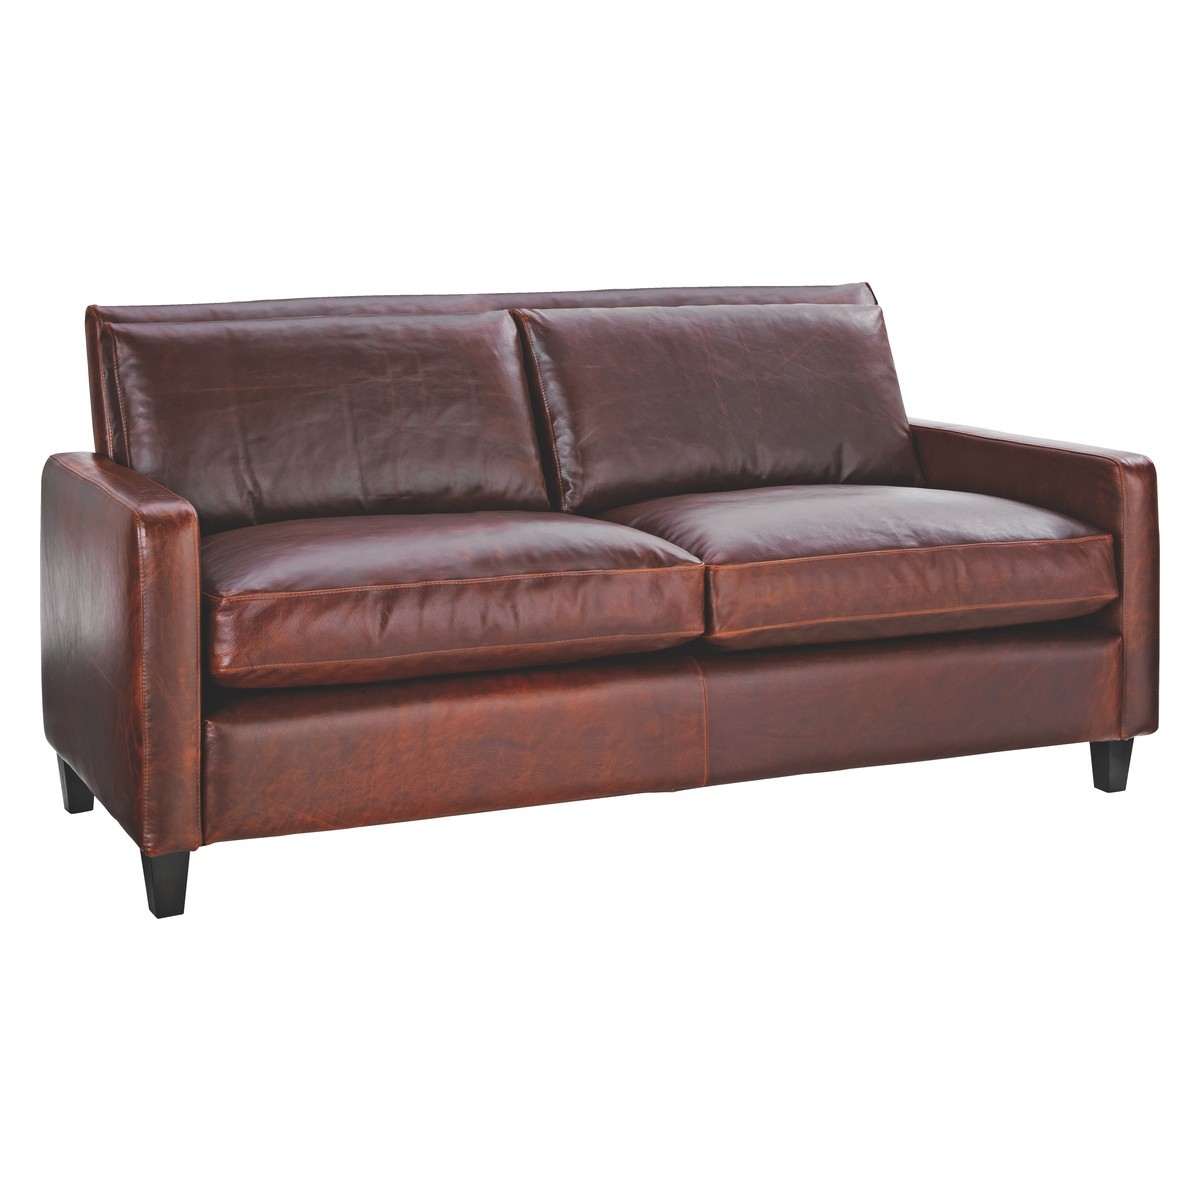 Chester Tan Leather 2 Seater Sofa Dark Stained Feet Buy Now At Intended For 2 Seater Sofas (Image 8 of 15)